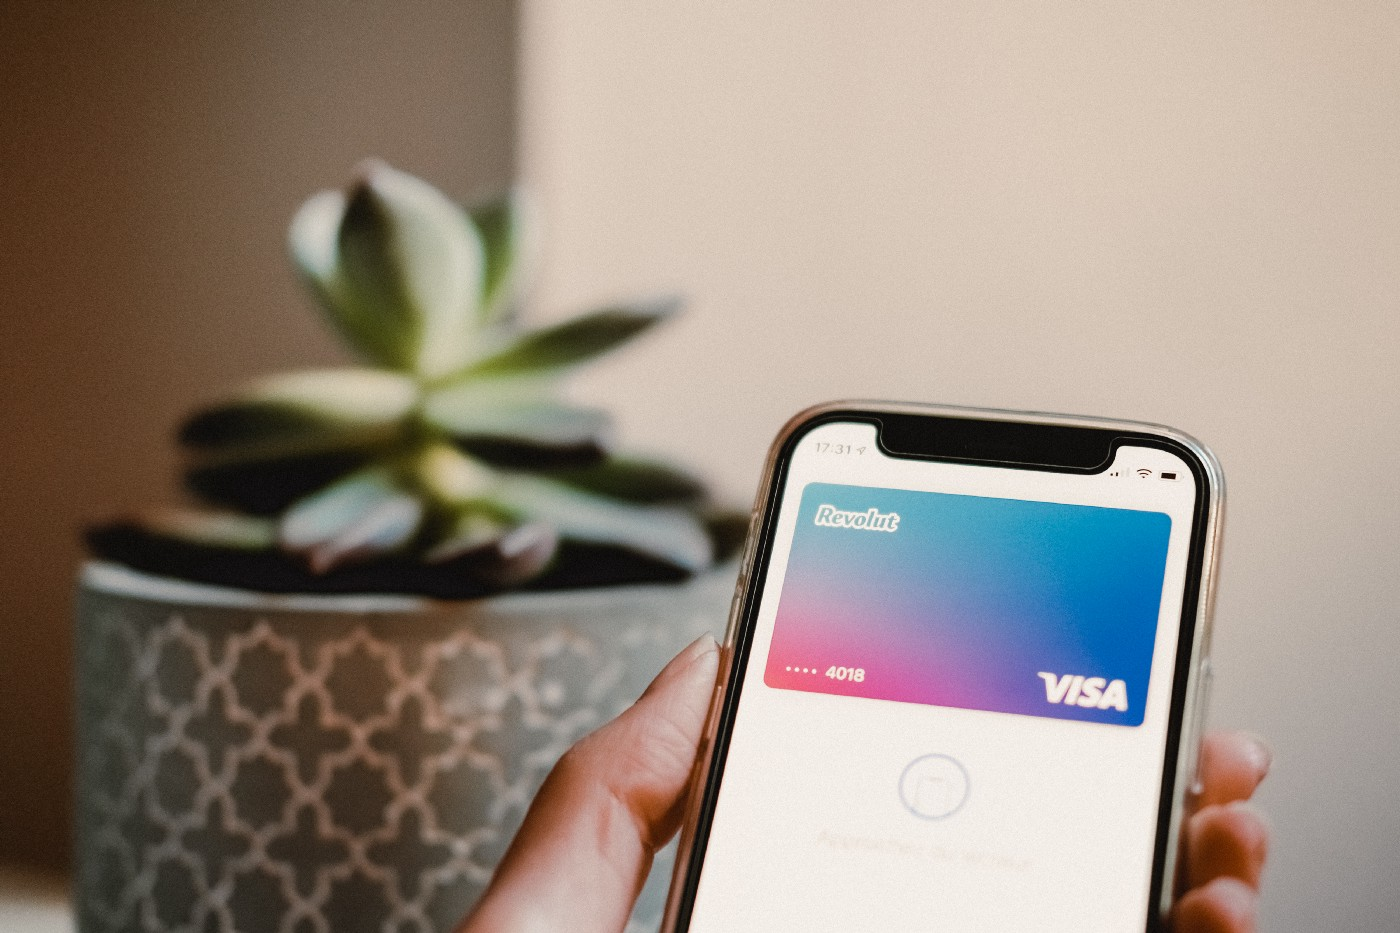 Revolut opened on a smartphone.